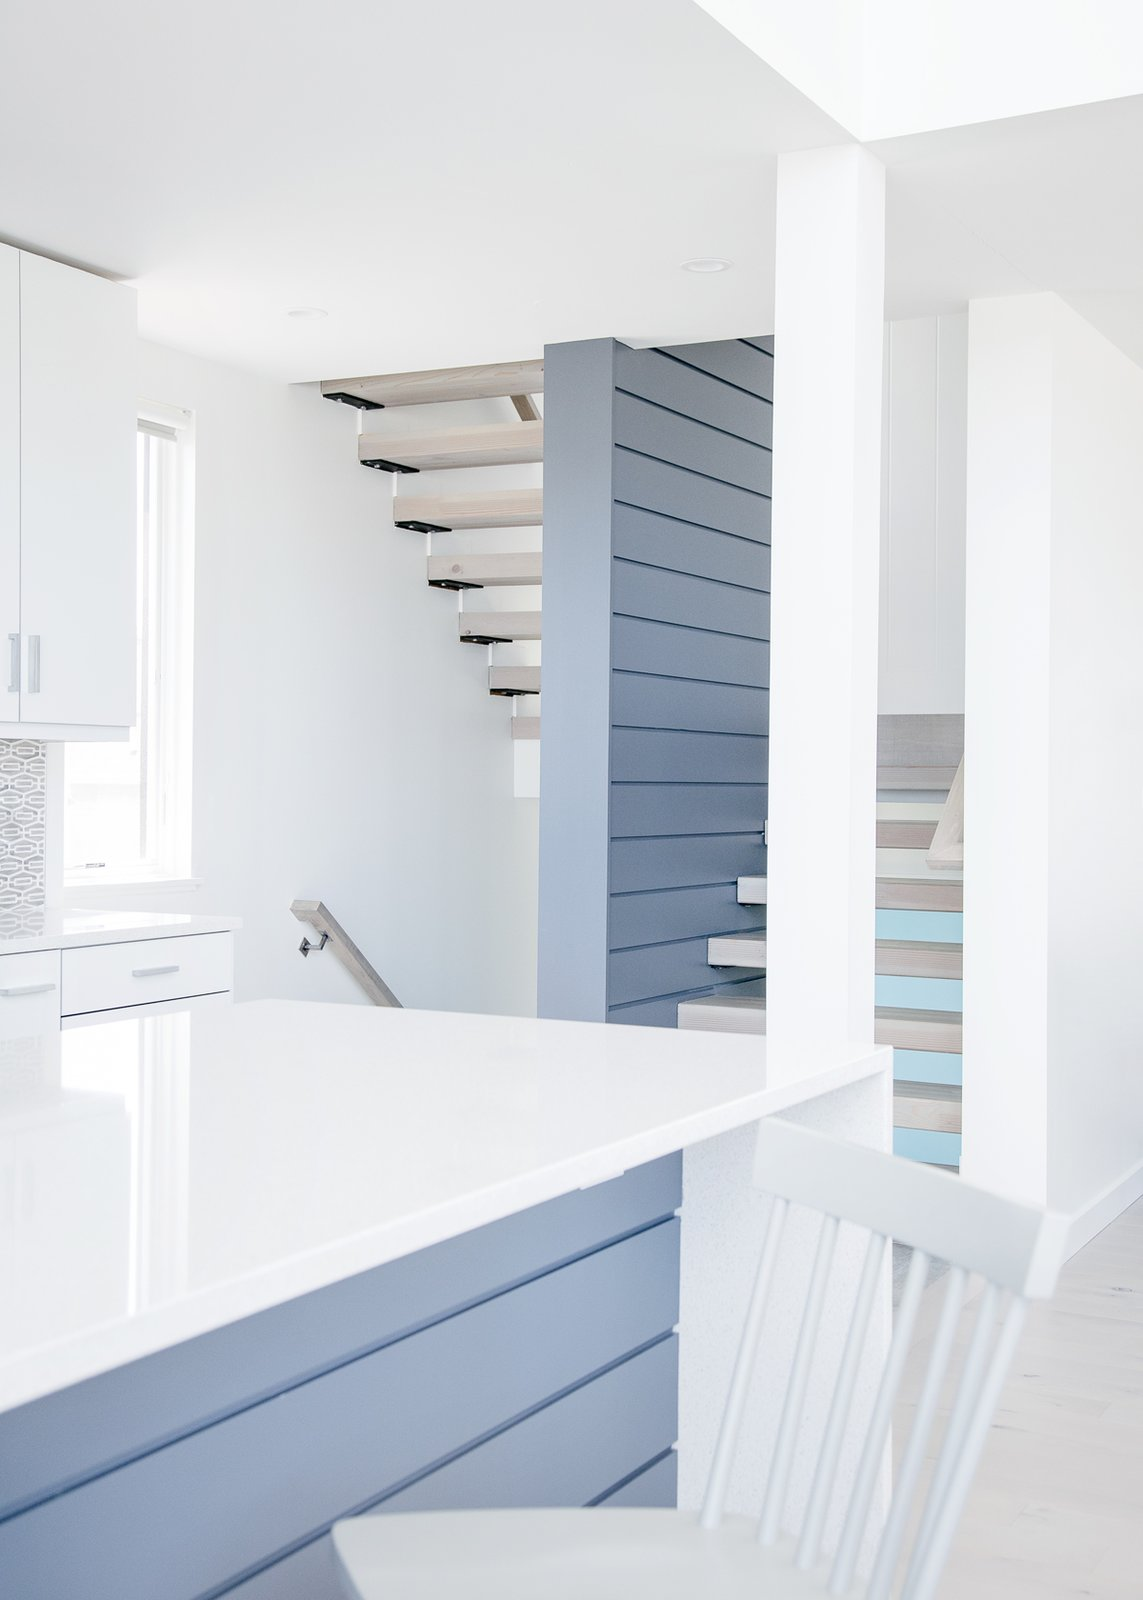 Kitchen and stair Tagged: Kitchen, White Cabinet, Engineered Quartz Counter, Light Hardwood Floor, and Mosaic Tile Backsplashe. Sea Bright House by Jeff Jordan Architects